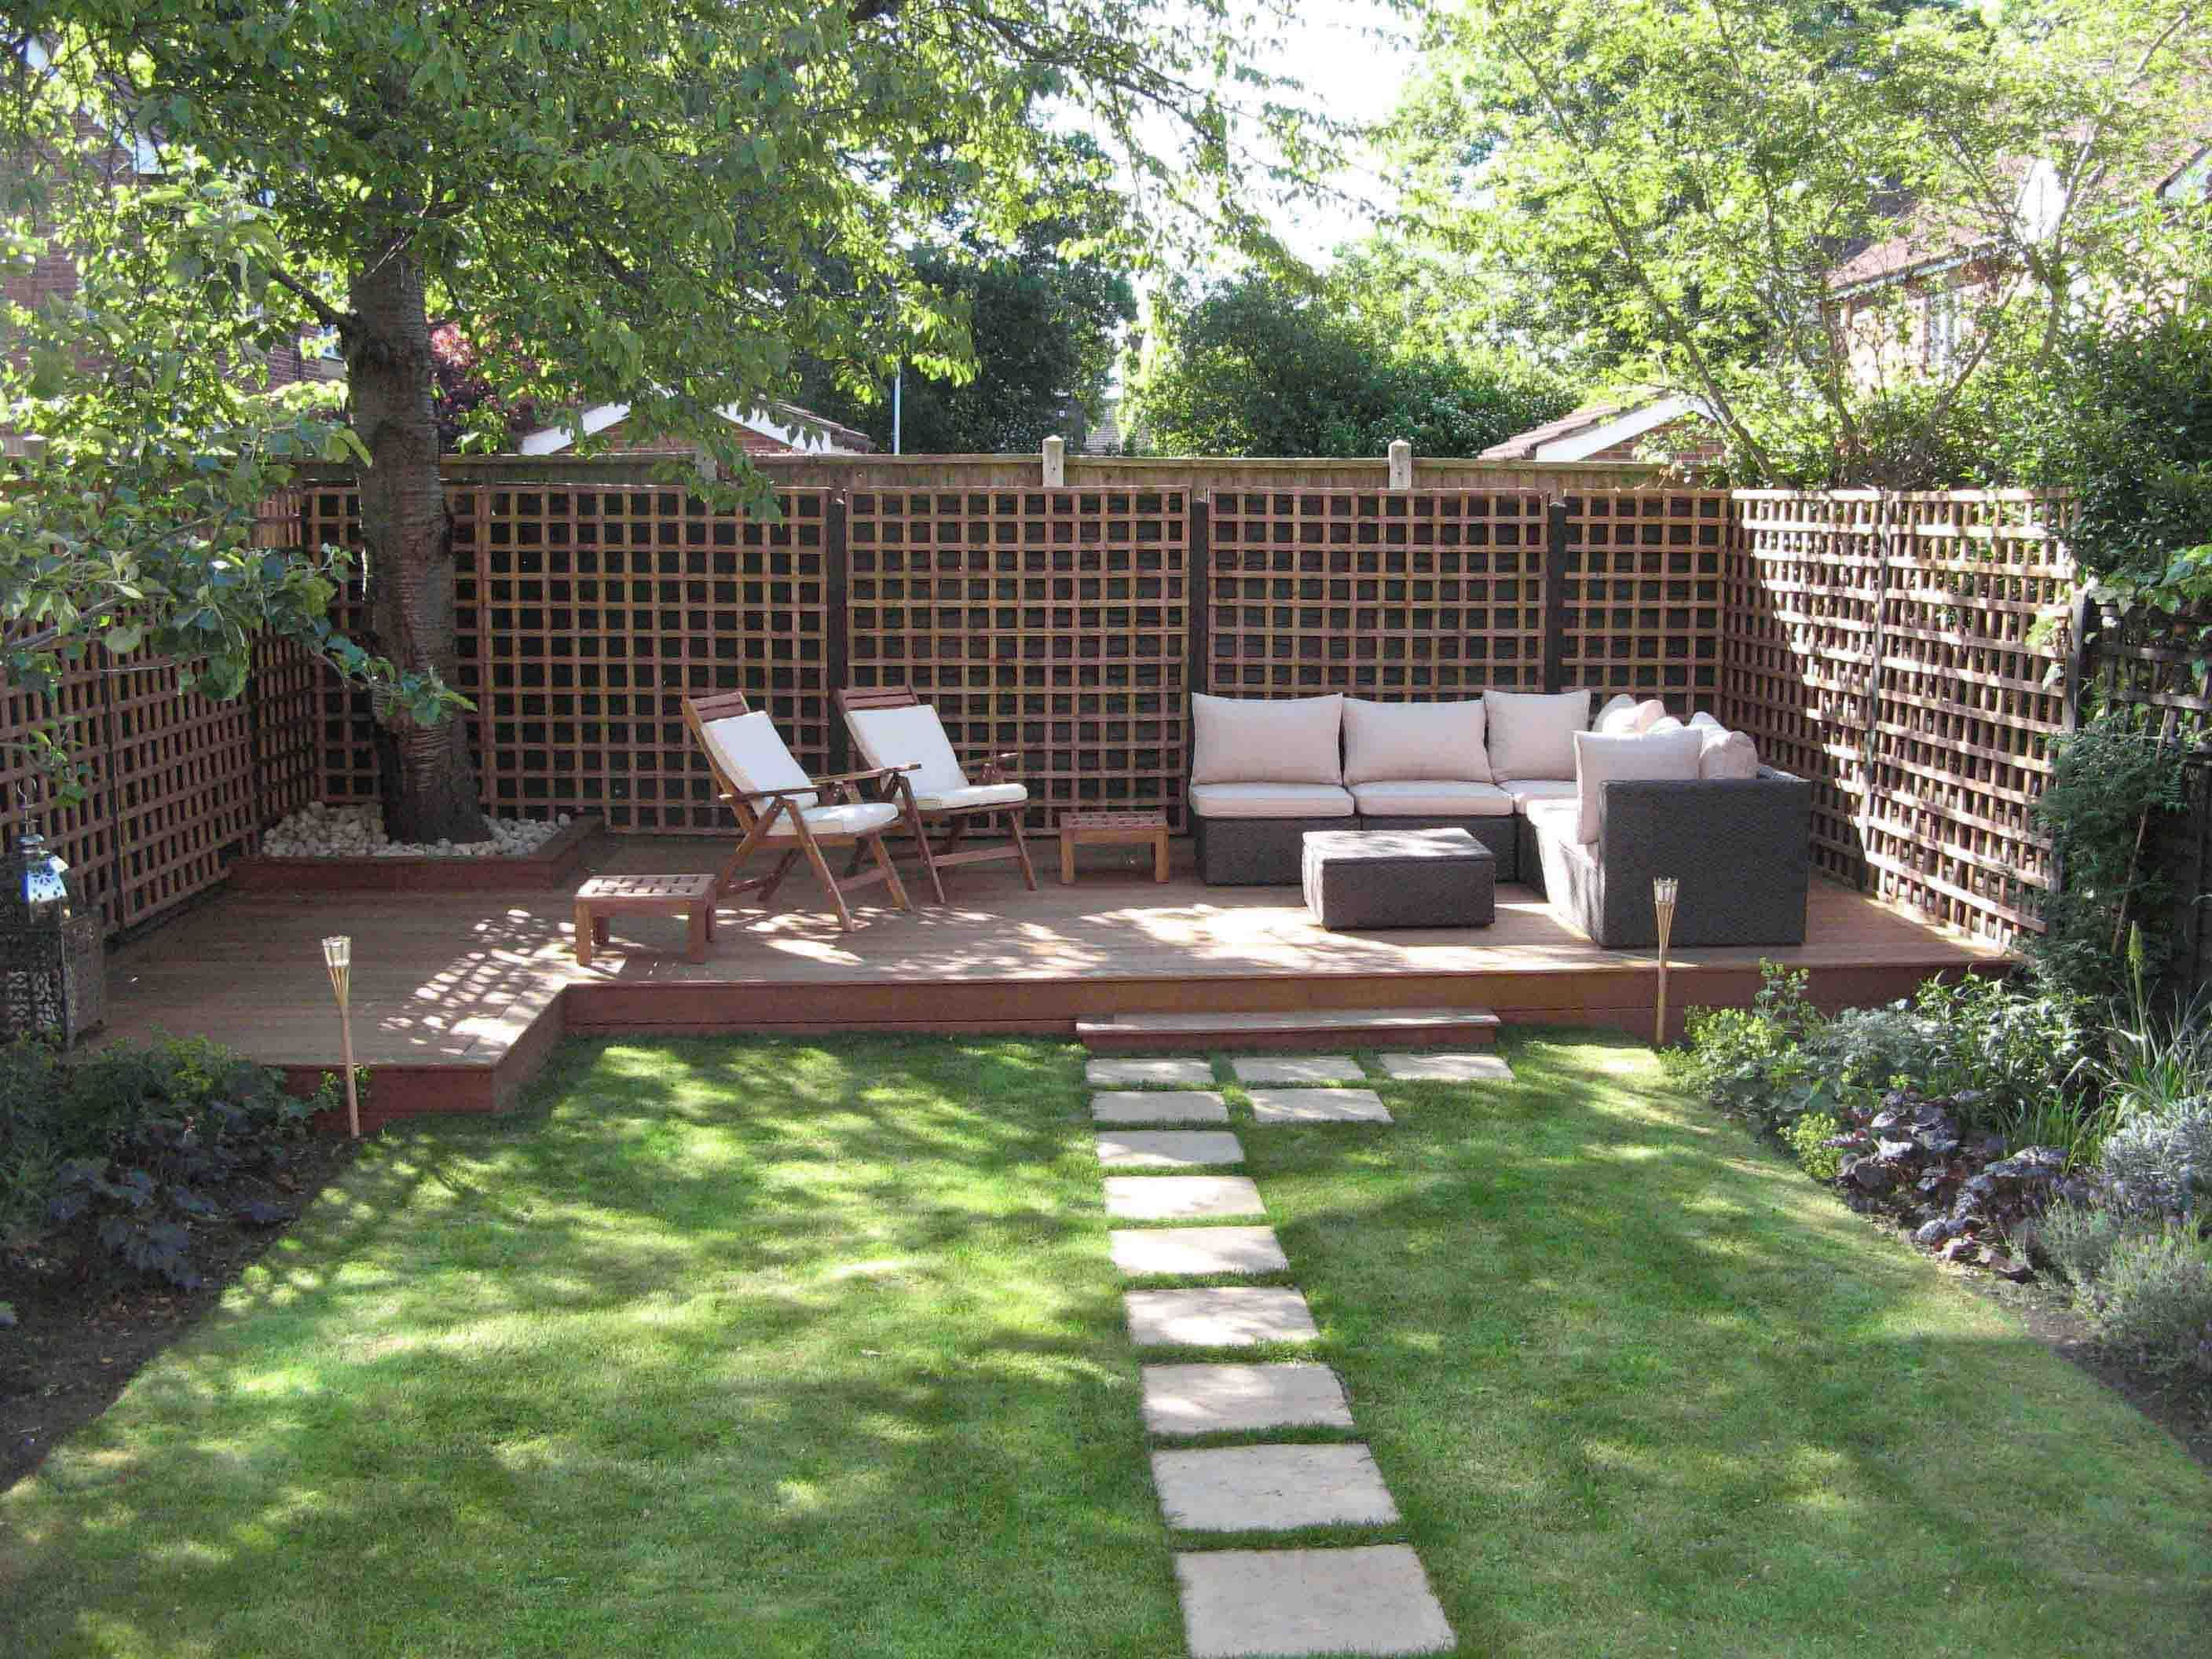 backyard patio ideas cheap backyard patio deck ideas - Narrow Backyard Design Ideas